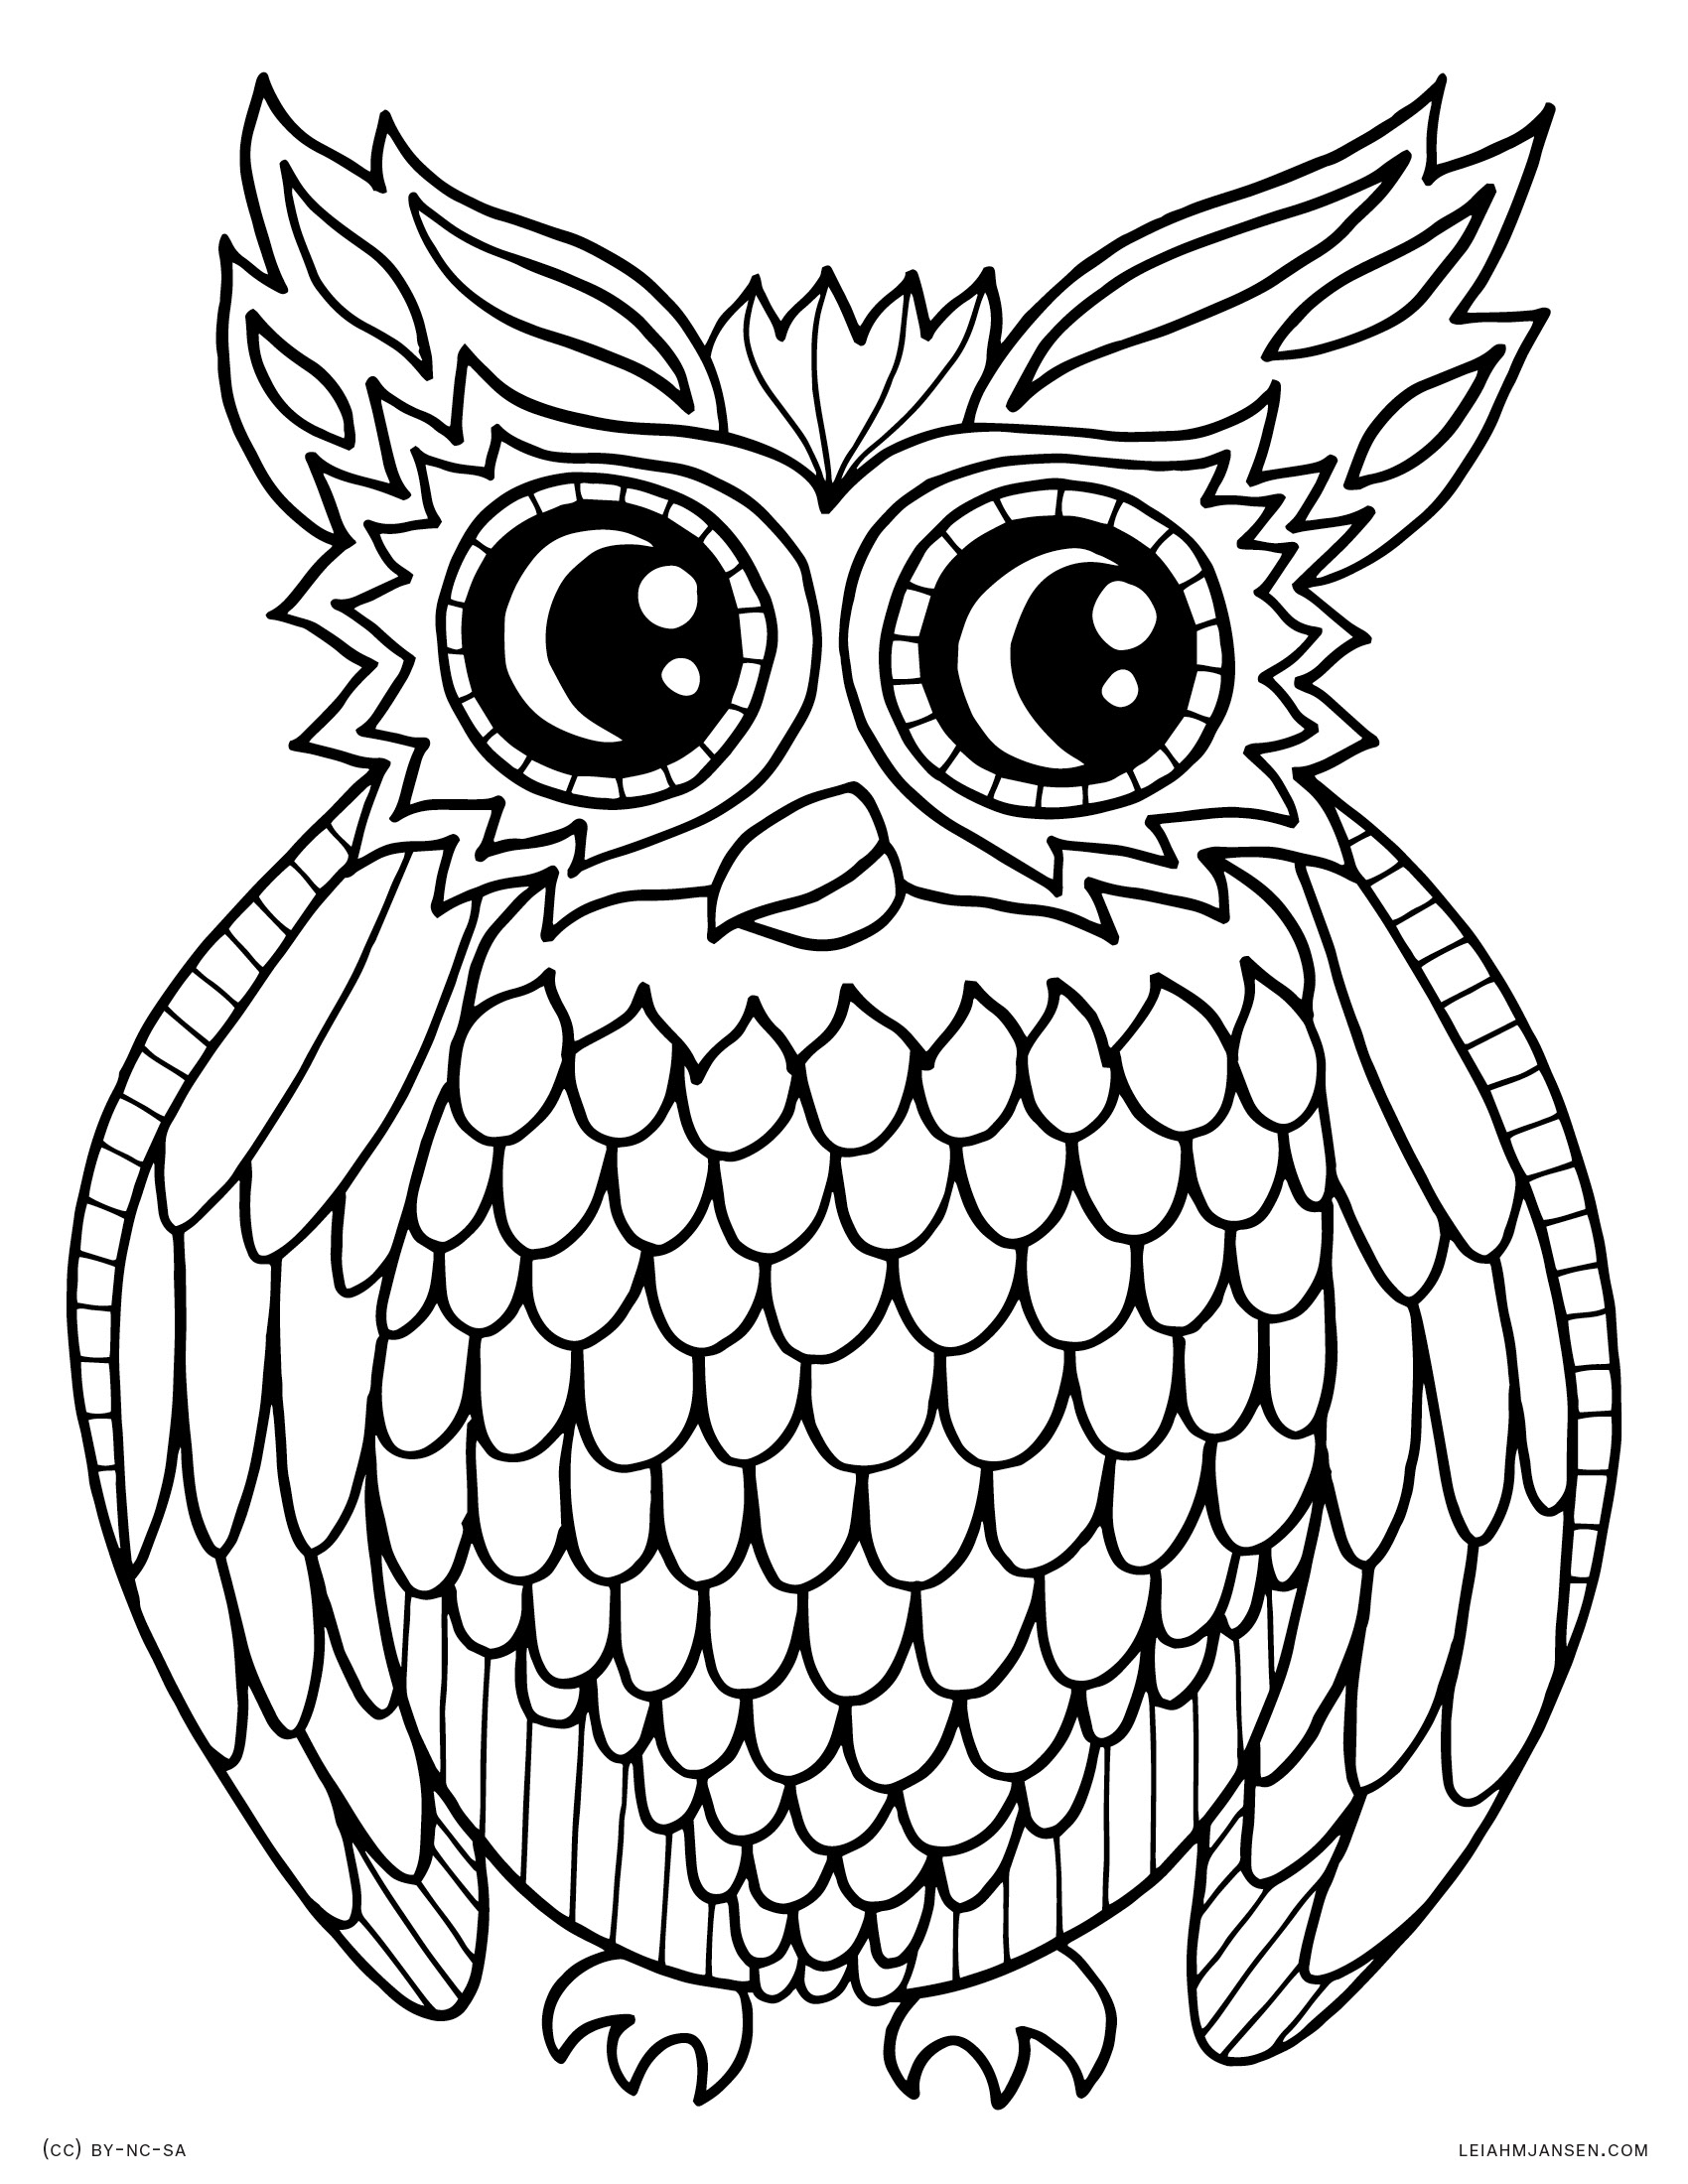 pictures of birds to color bird coloring pages image by coloring fun on birds of color birds pictures to